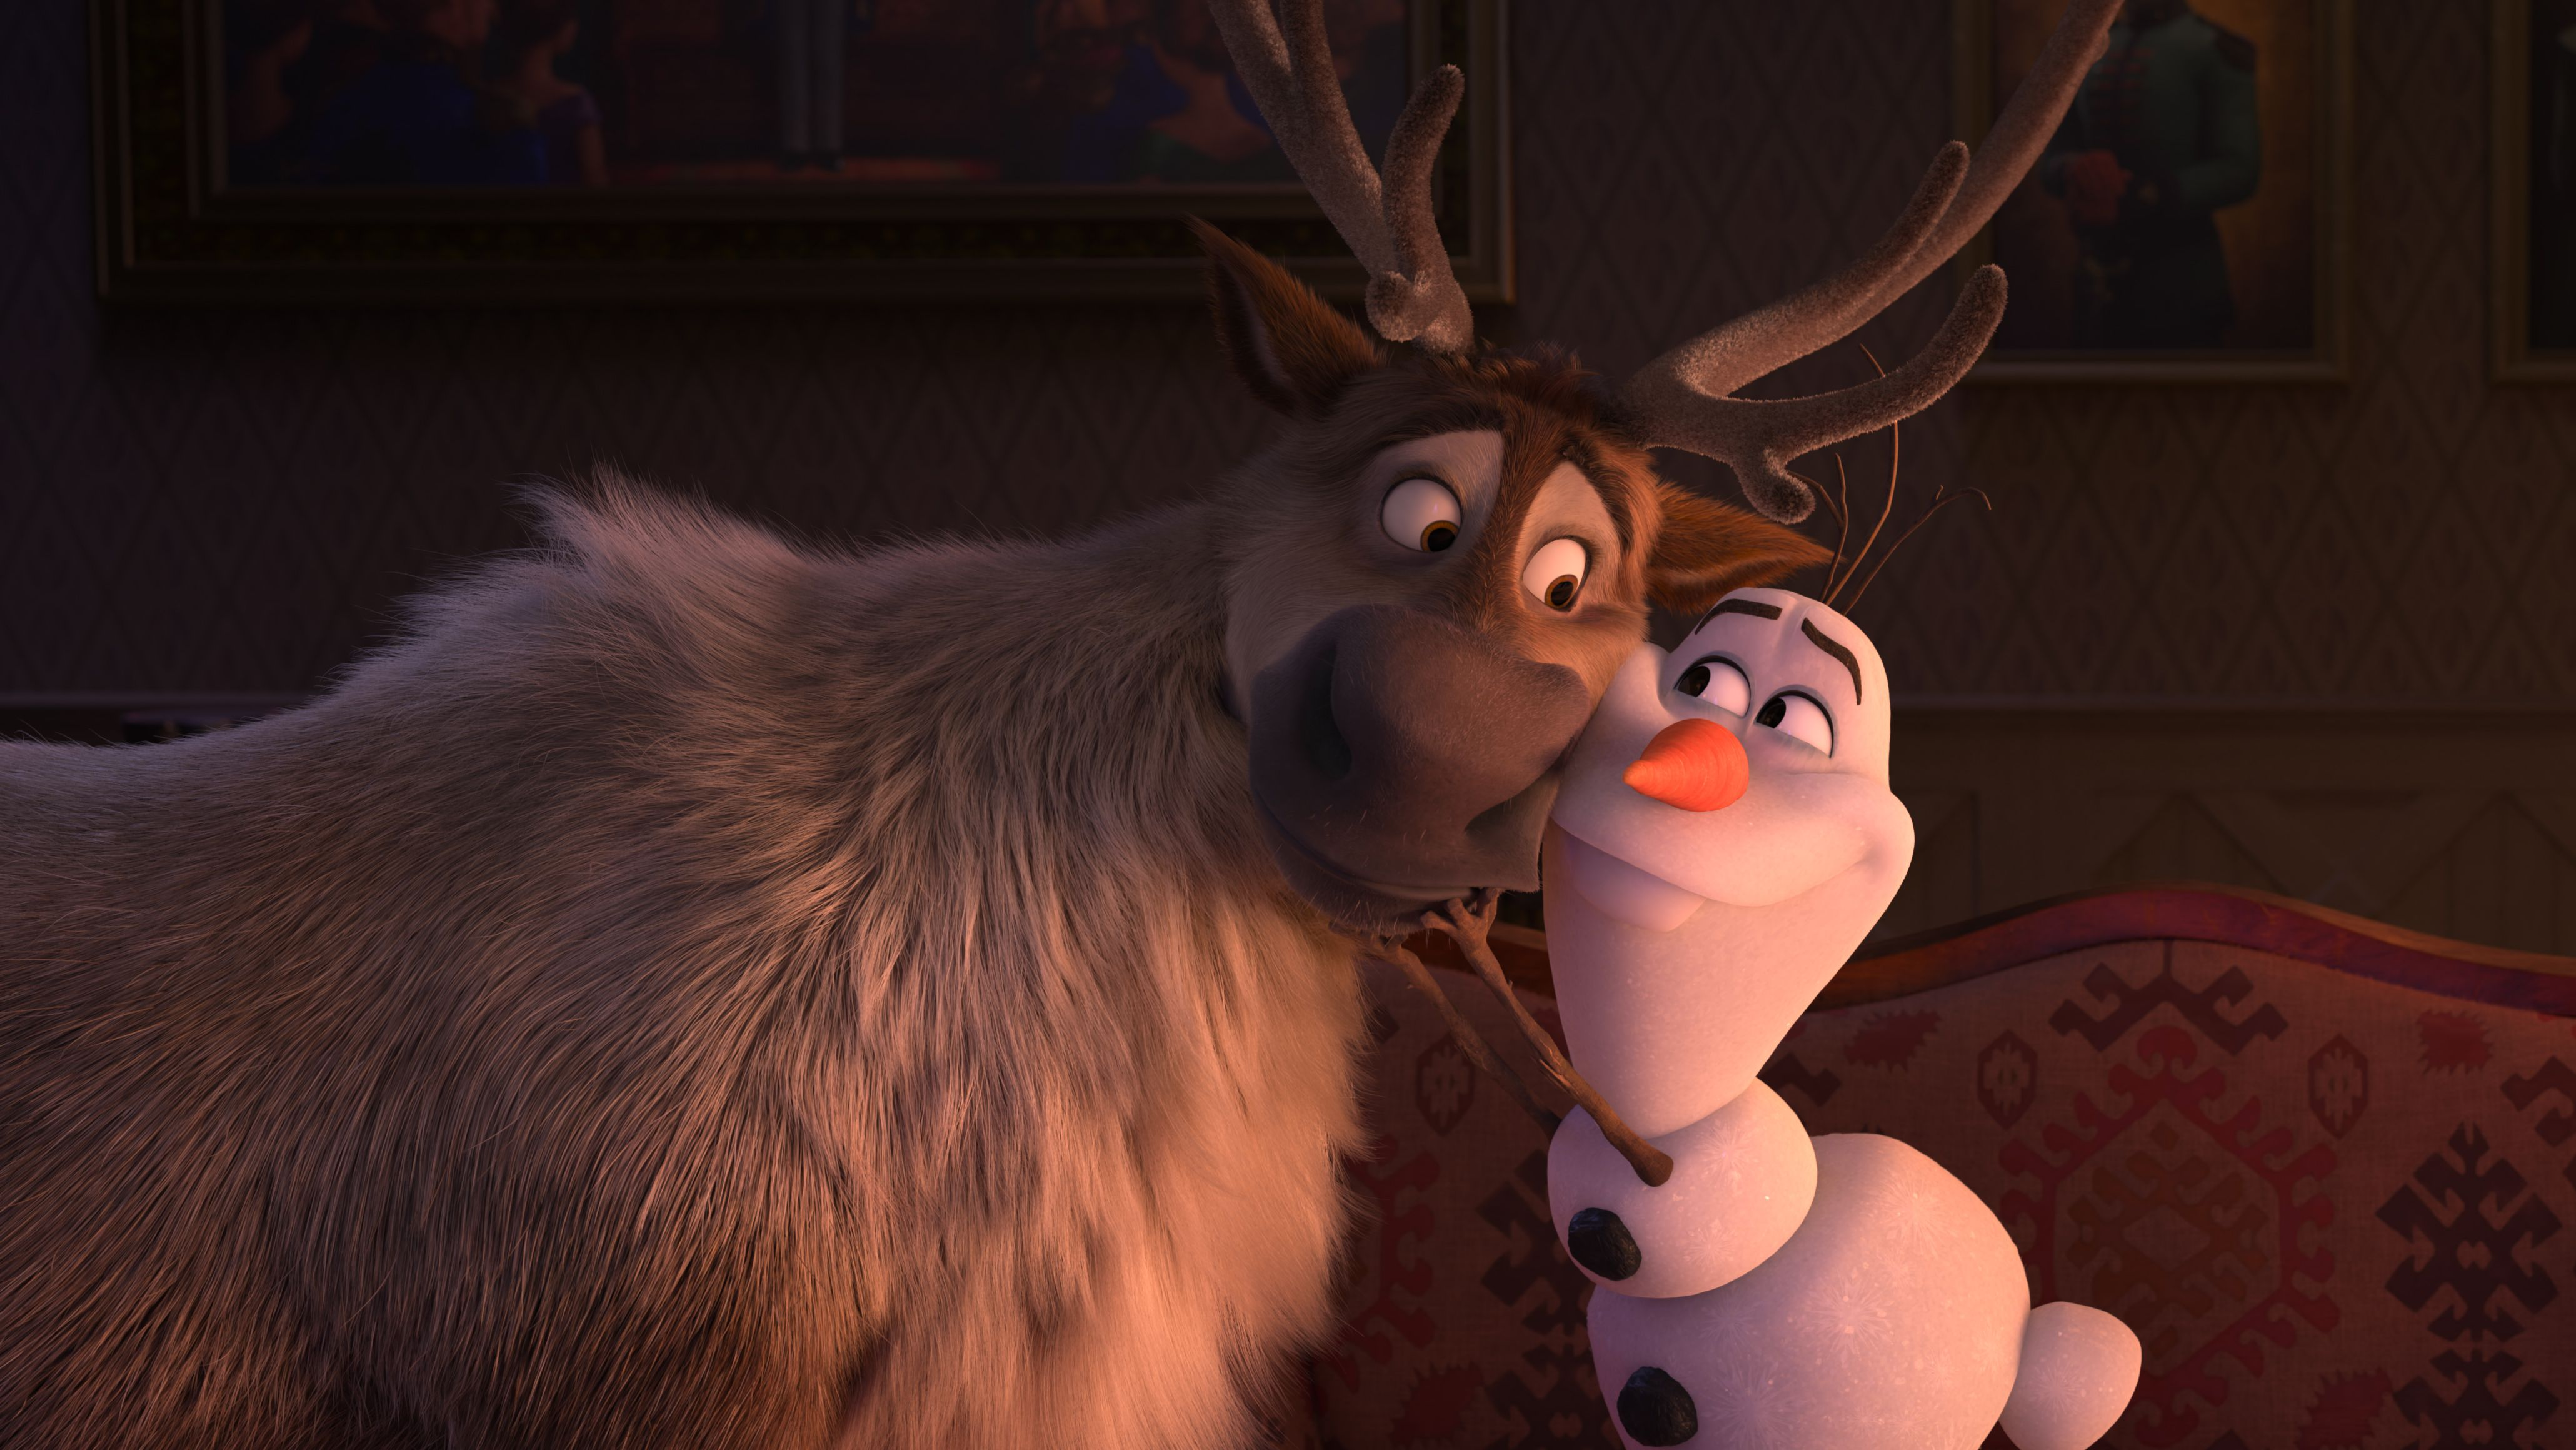 Why Frozen proved such an enormous hit, according to the producer